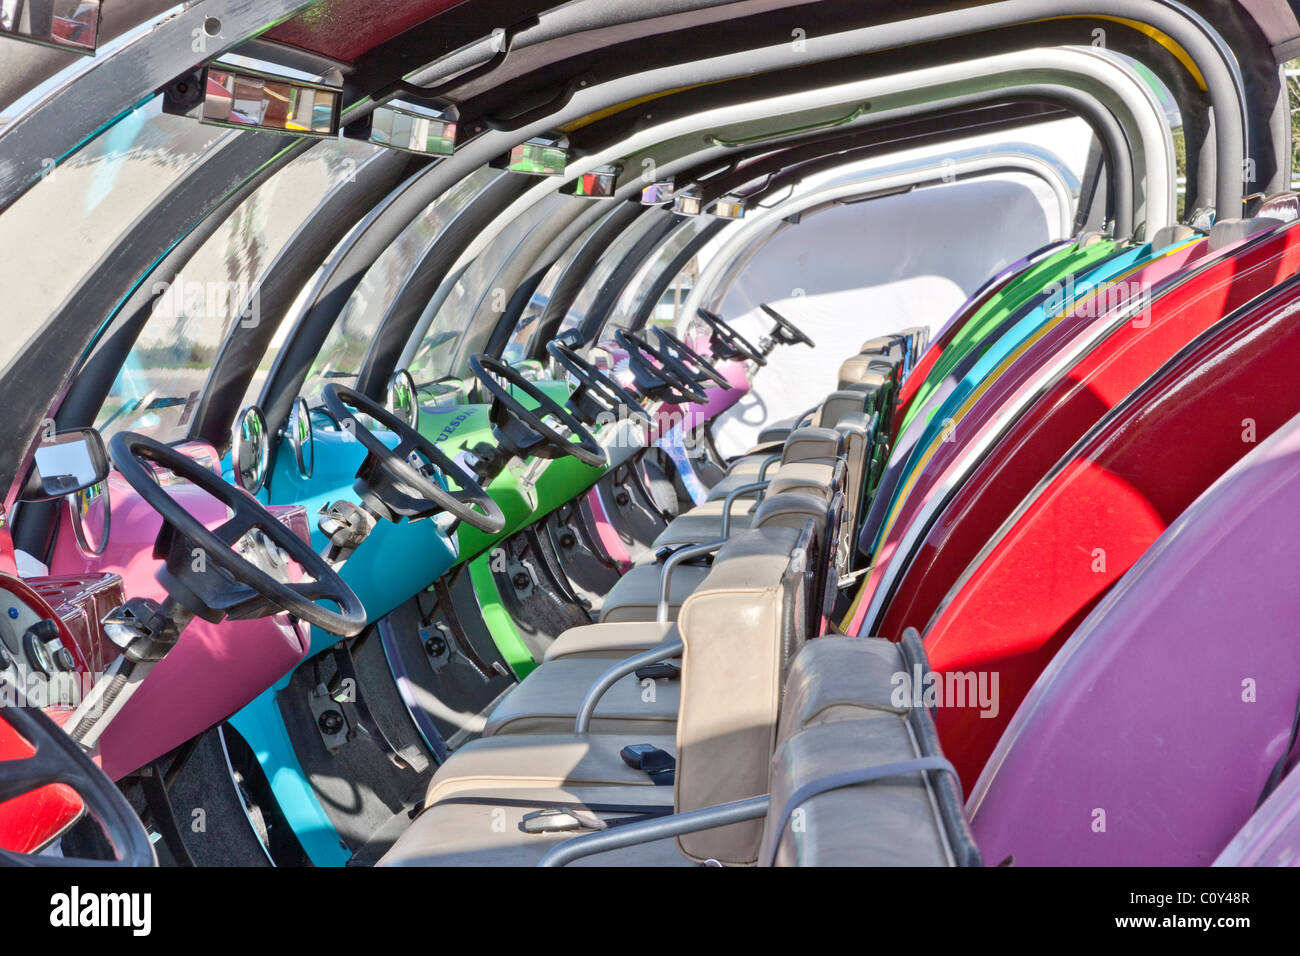 Colorful electric buggies. - Stock Image